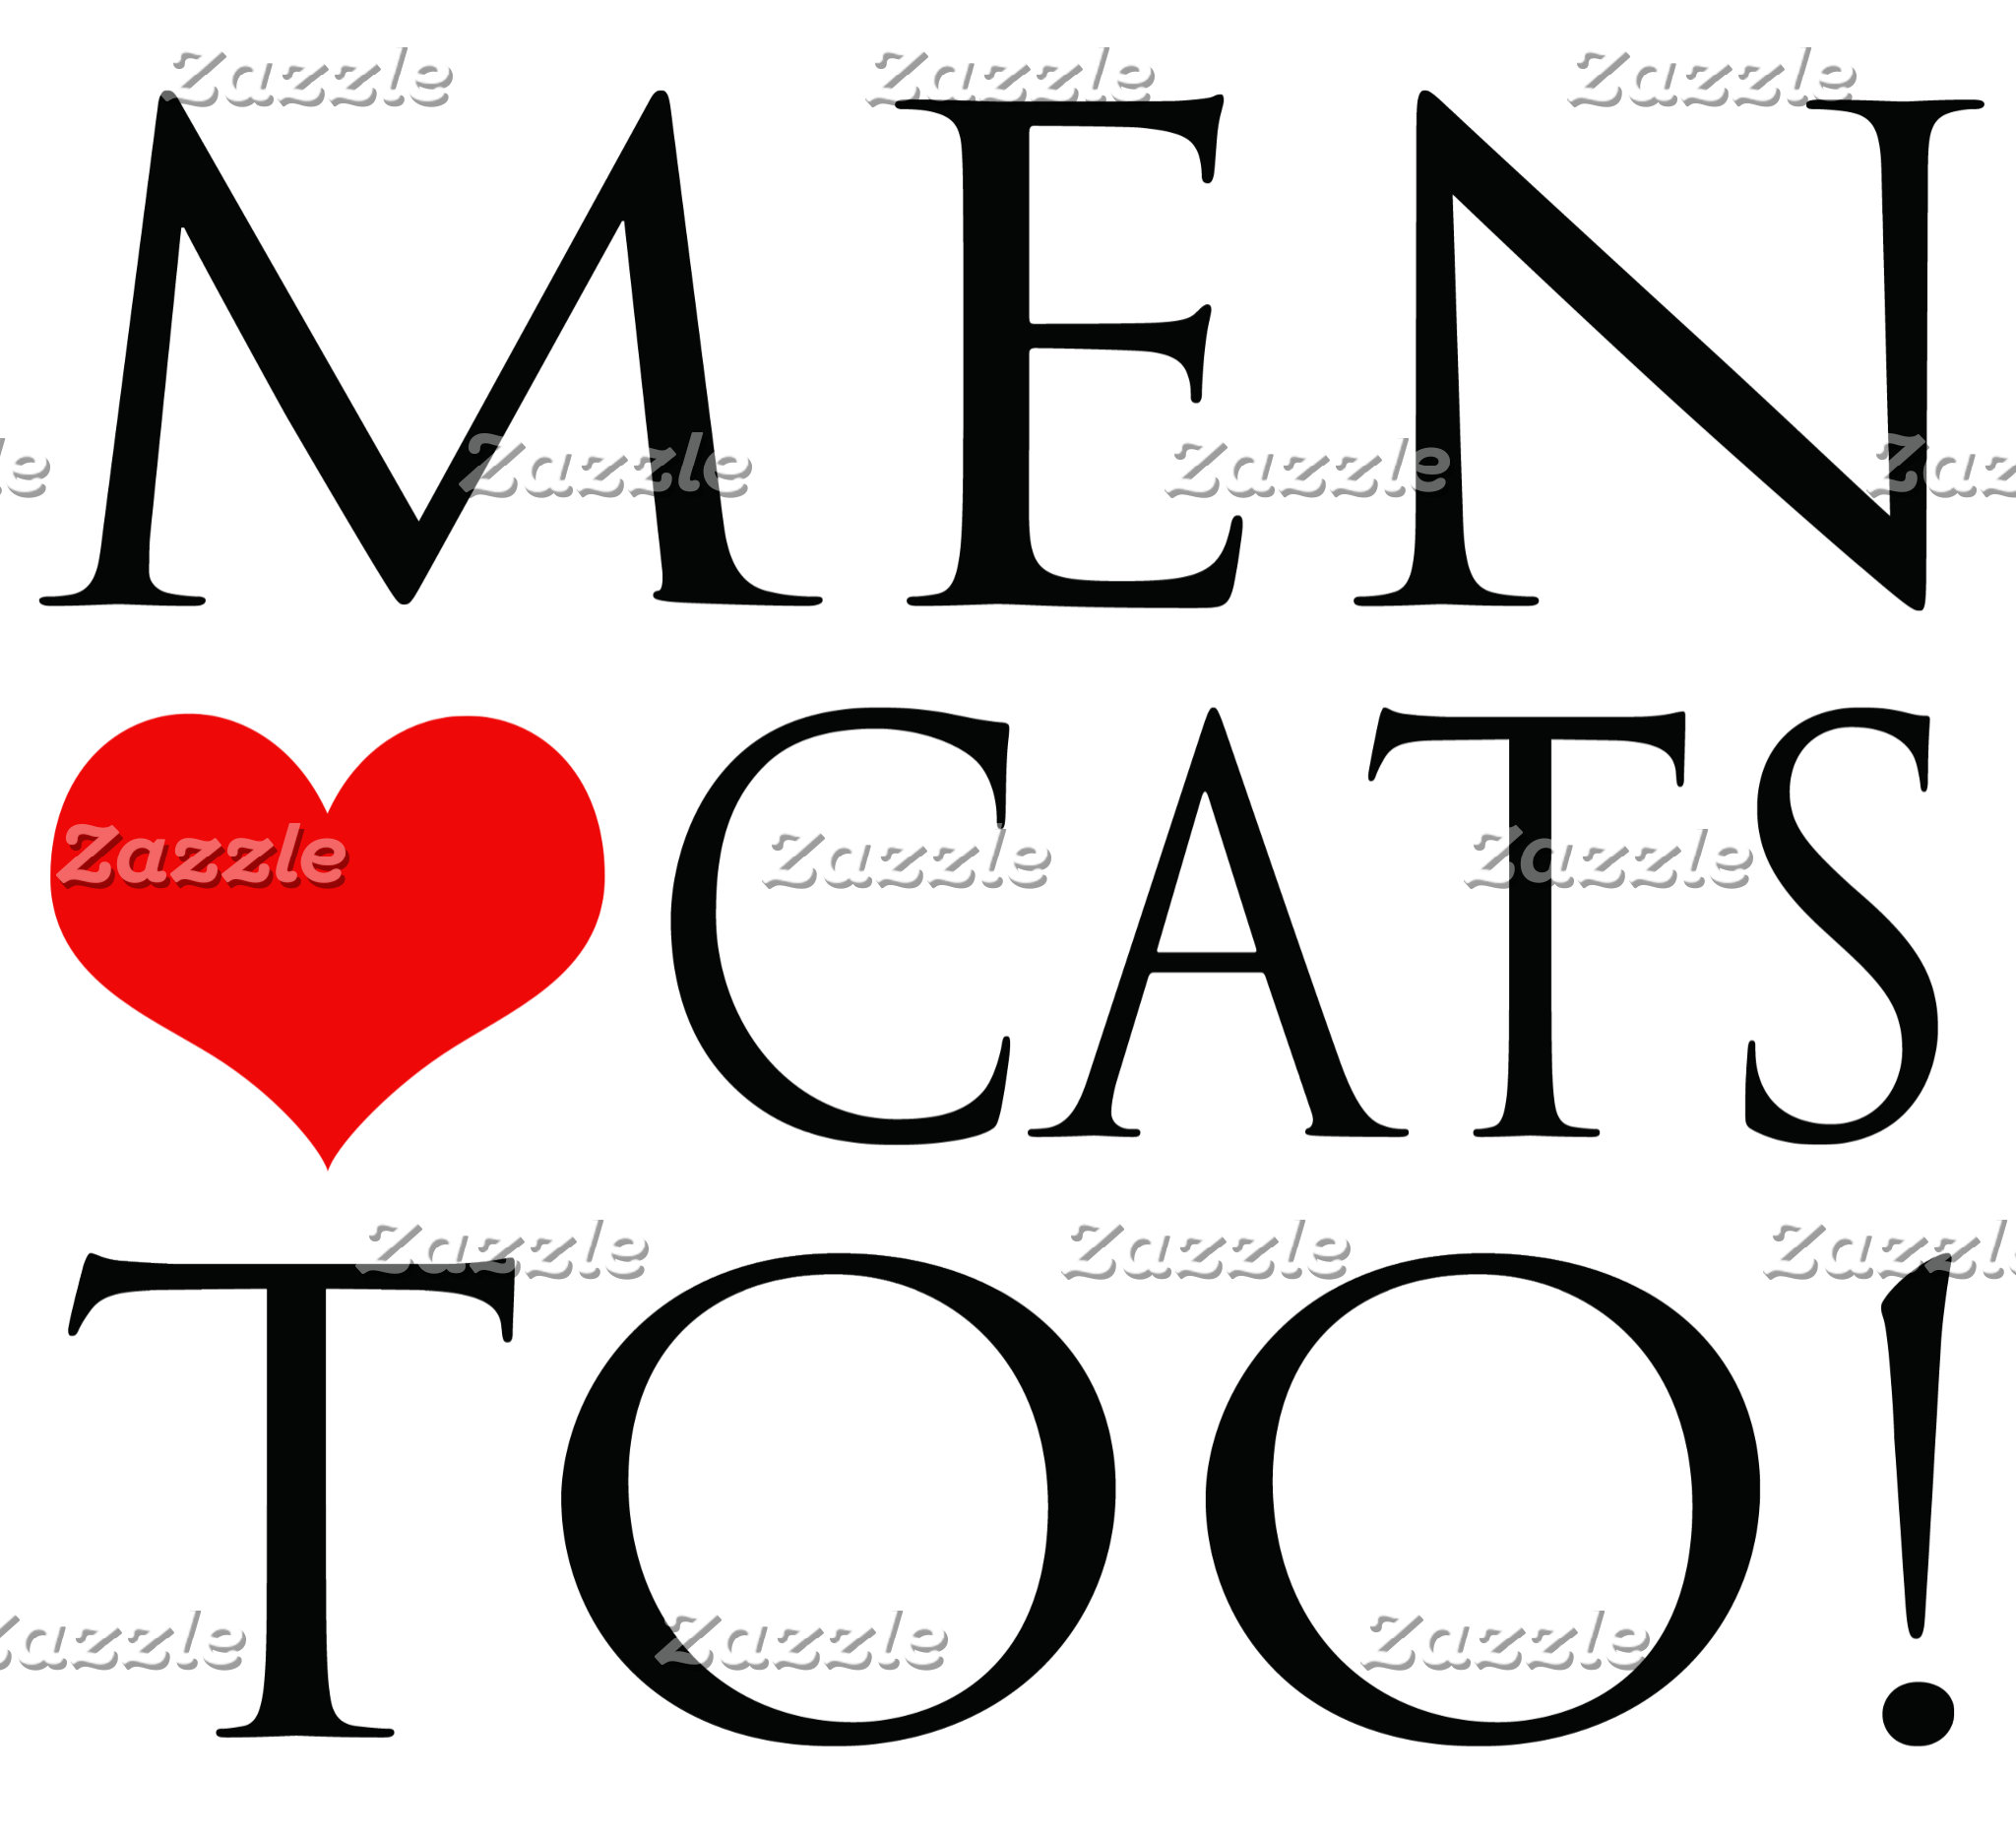 Men Love Cats Too!